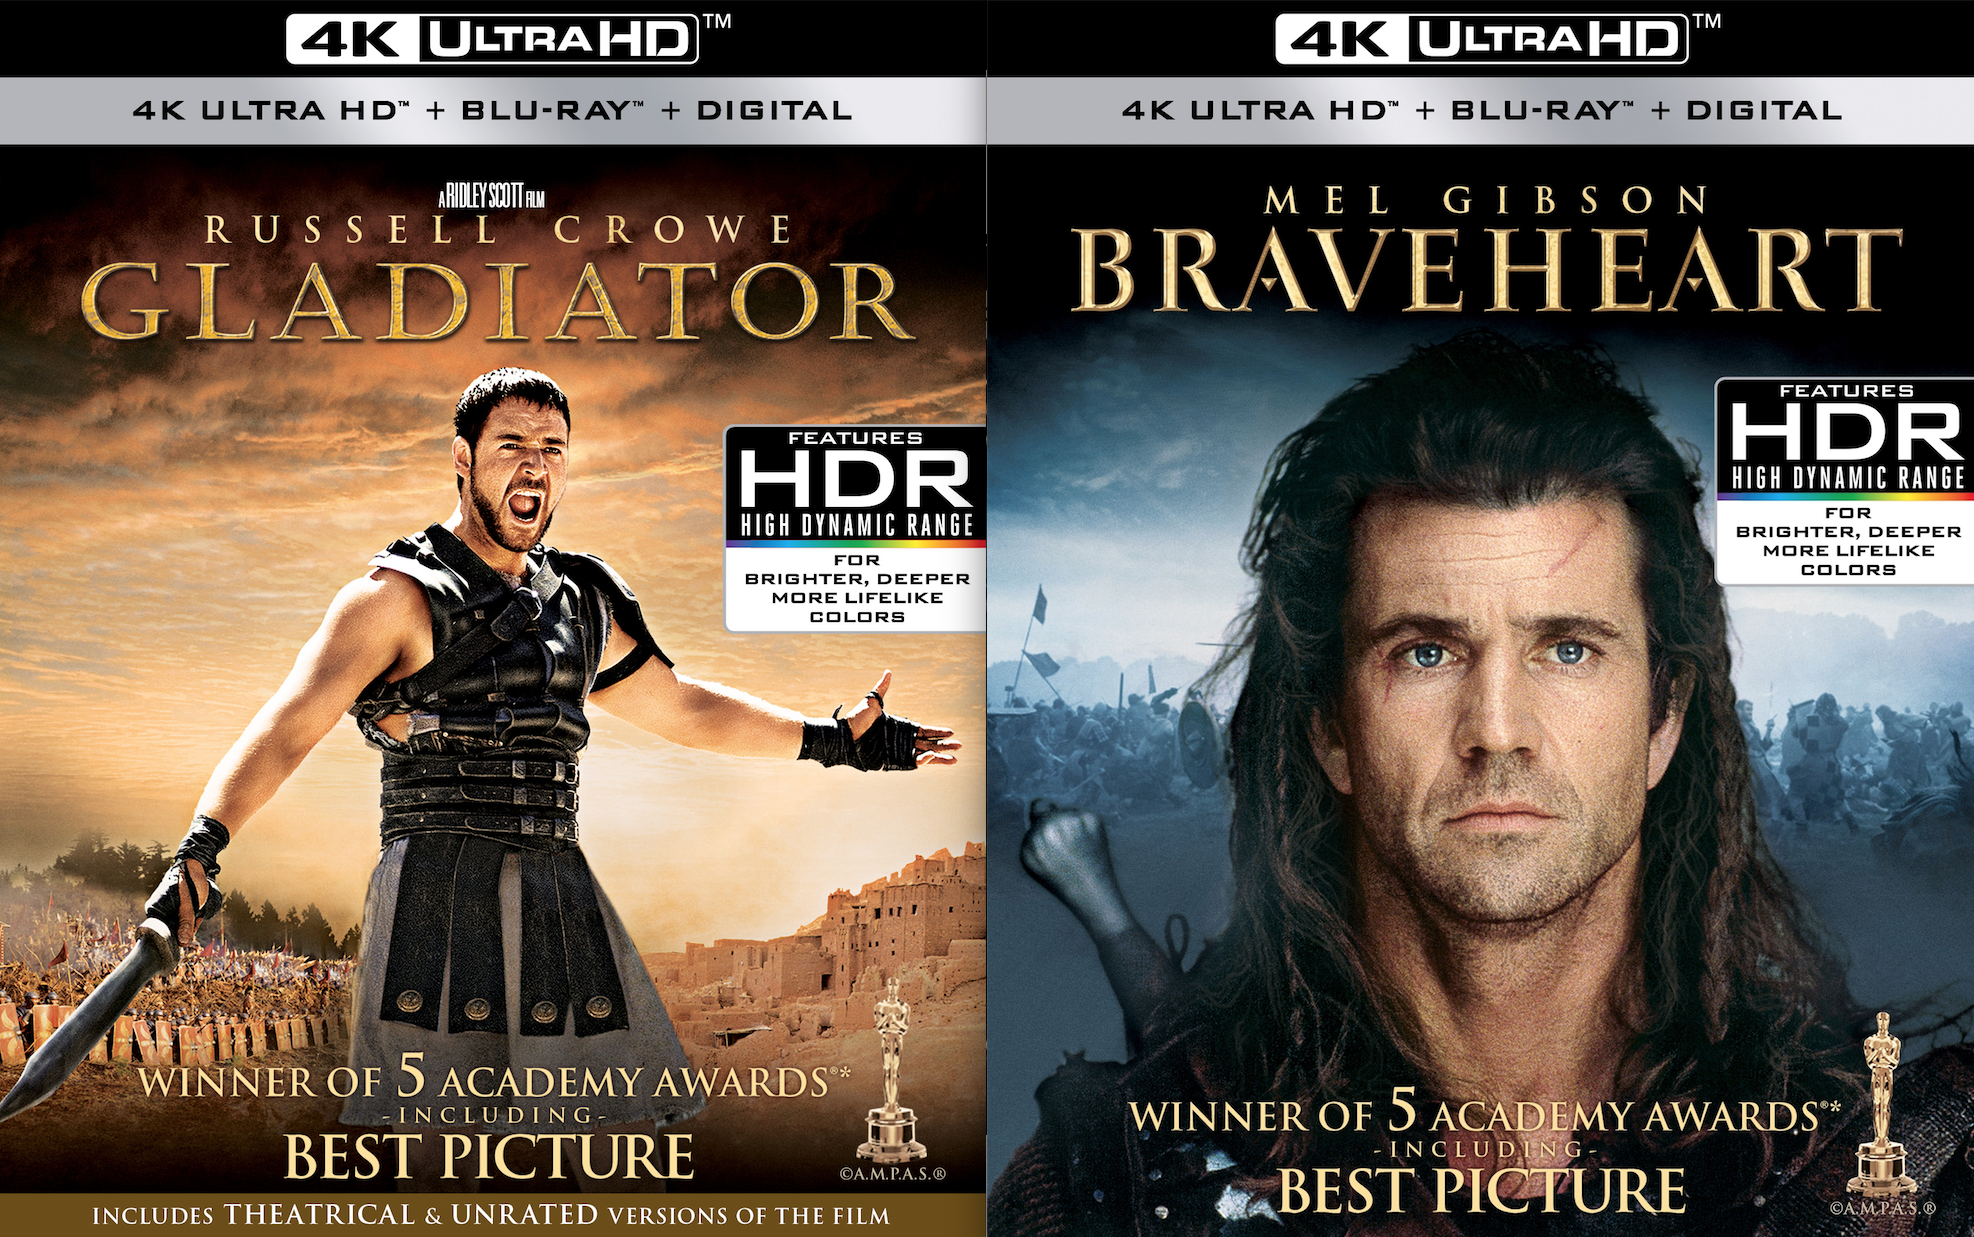 Beware The Ides Of March! Braveheart & Gladiator Hit 4K Ultra HD & Blu-Ray March 15th!